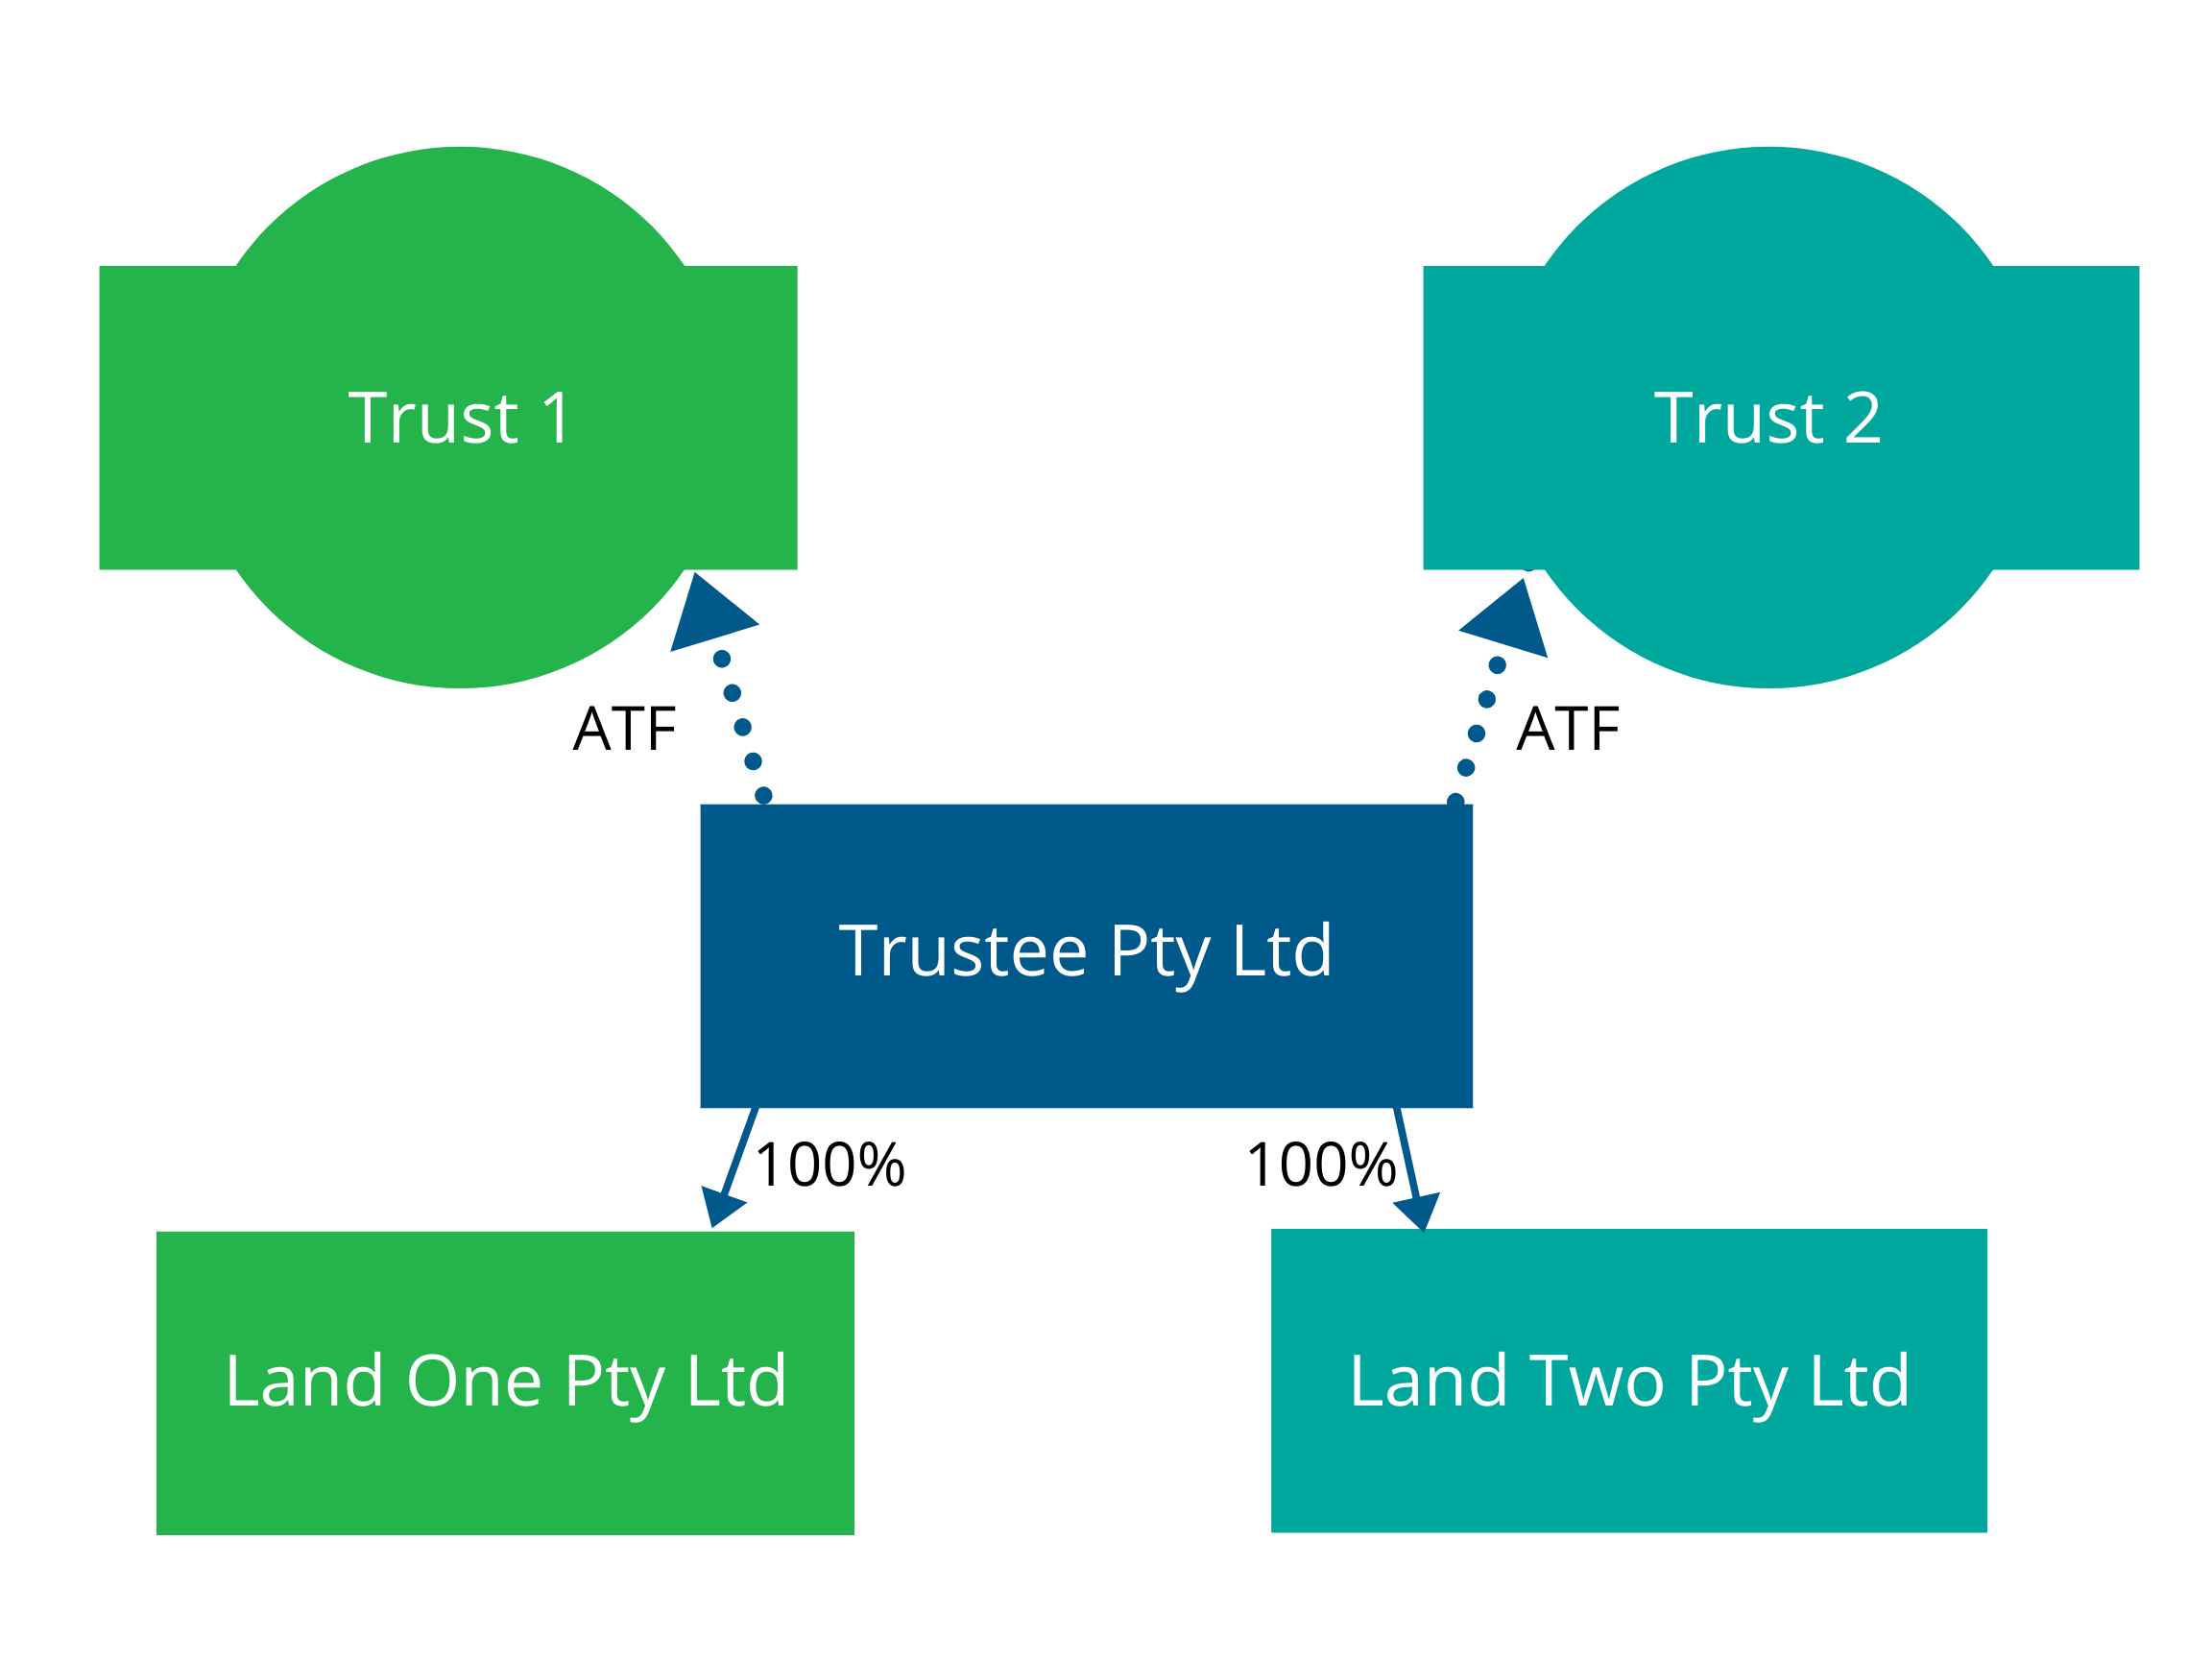 Illustration showing Trust 1 and Trust 2 have the same Trustee and that trustee holds land in two corporations